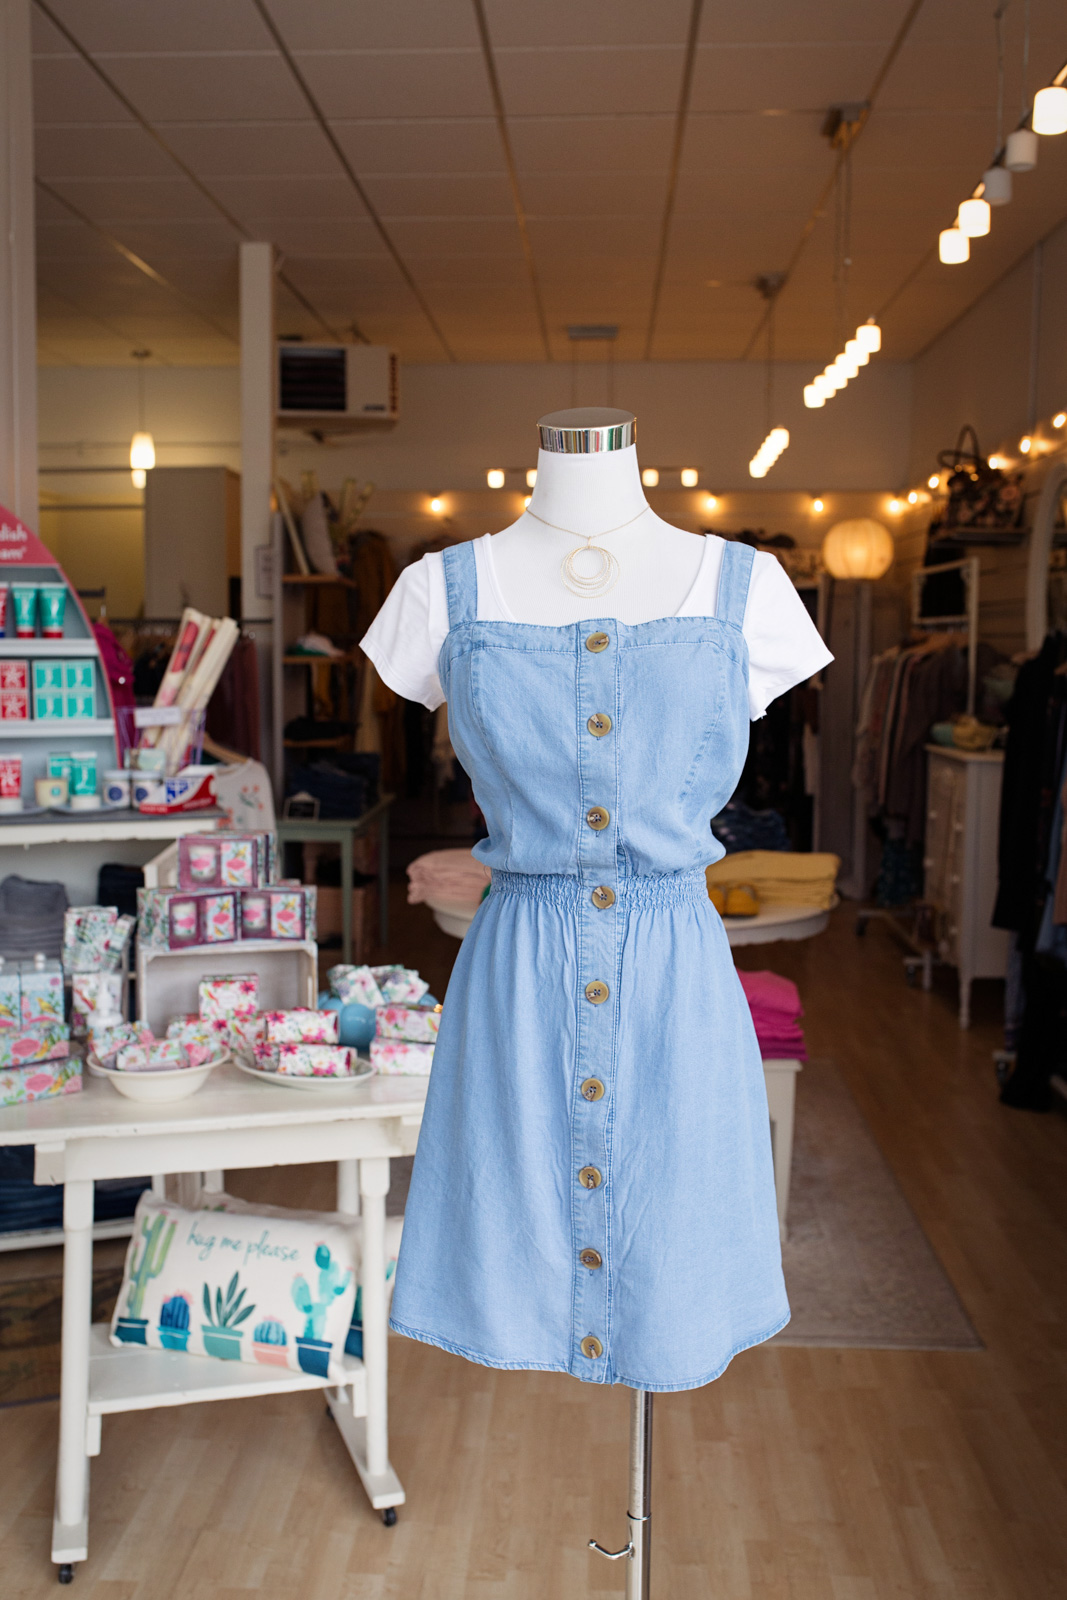 Meadow boutique seattle retail clothing store Yuliya Rae photography branding services-7.jpg